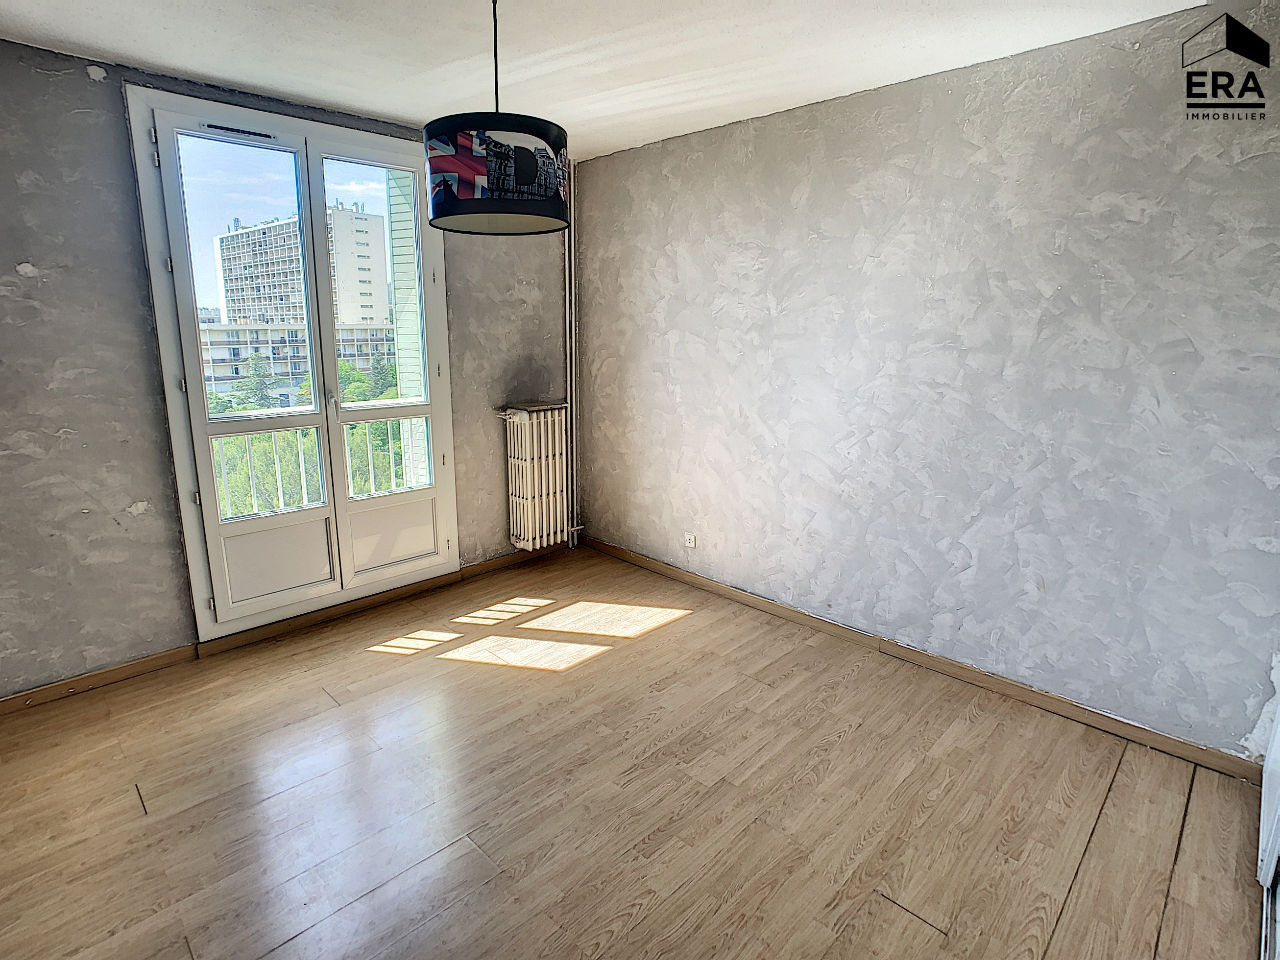 A VENDRE APPARTEMENT TYPE 3 MARSEILLE 13015  LES AYGALADES BALCON CAVE